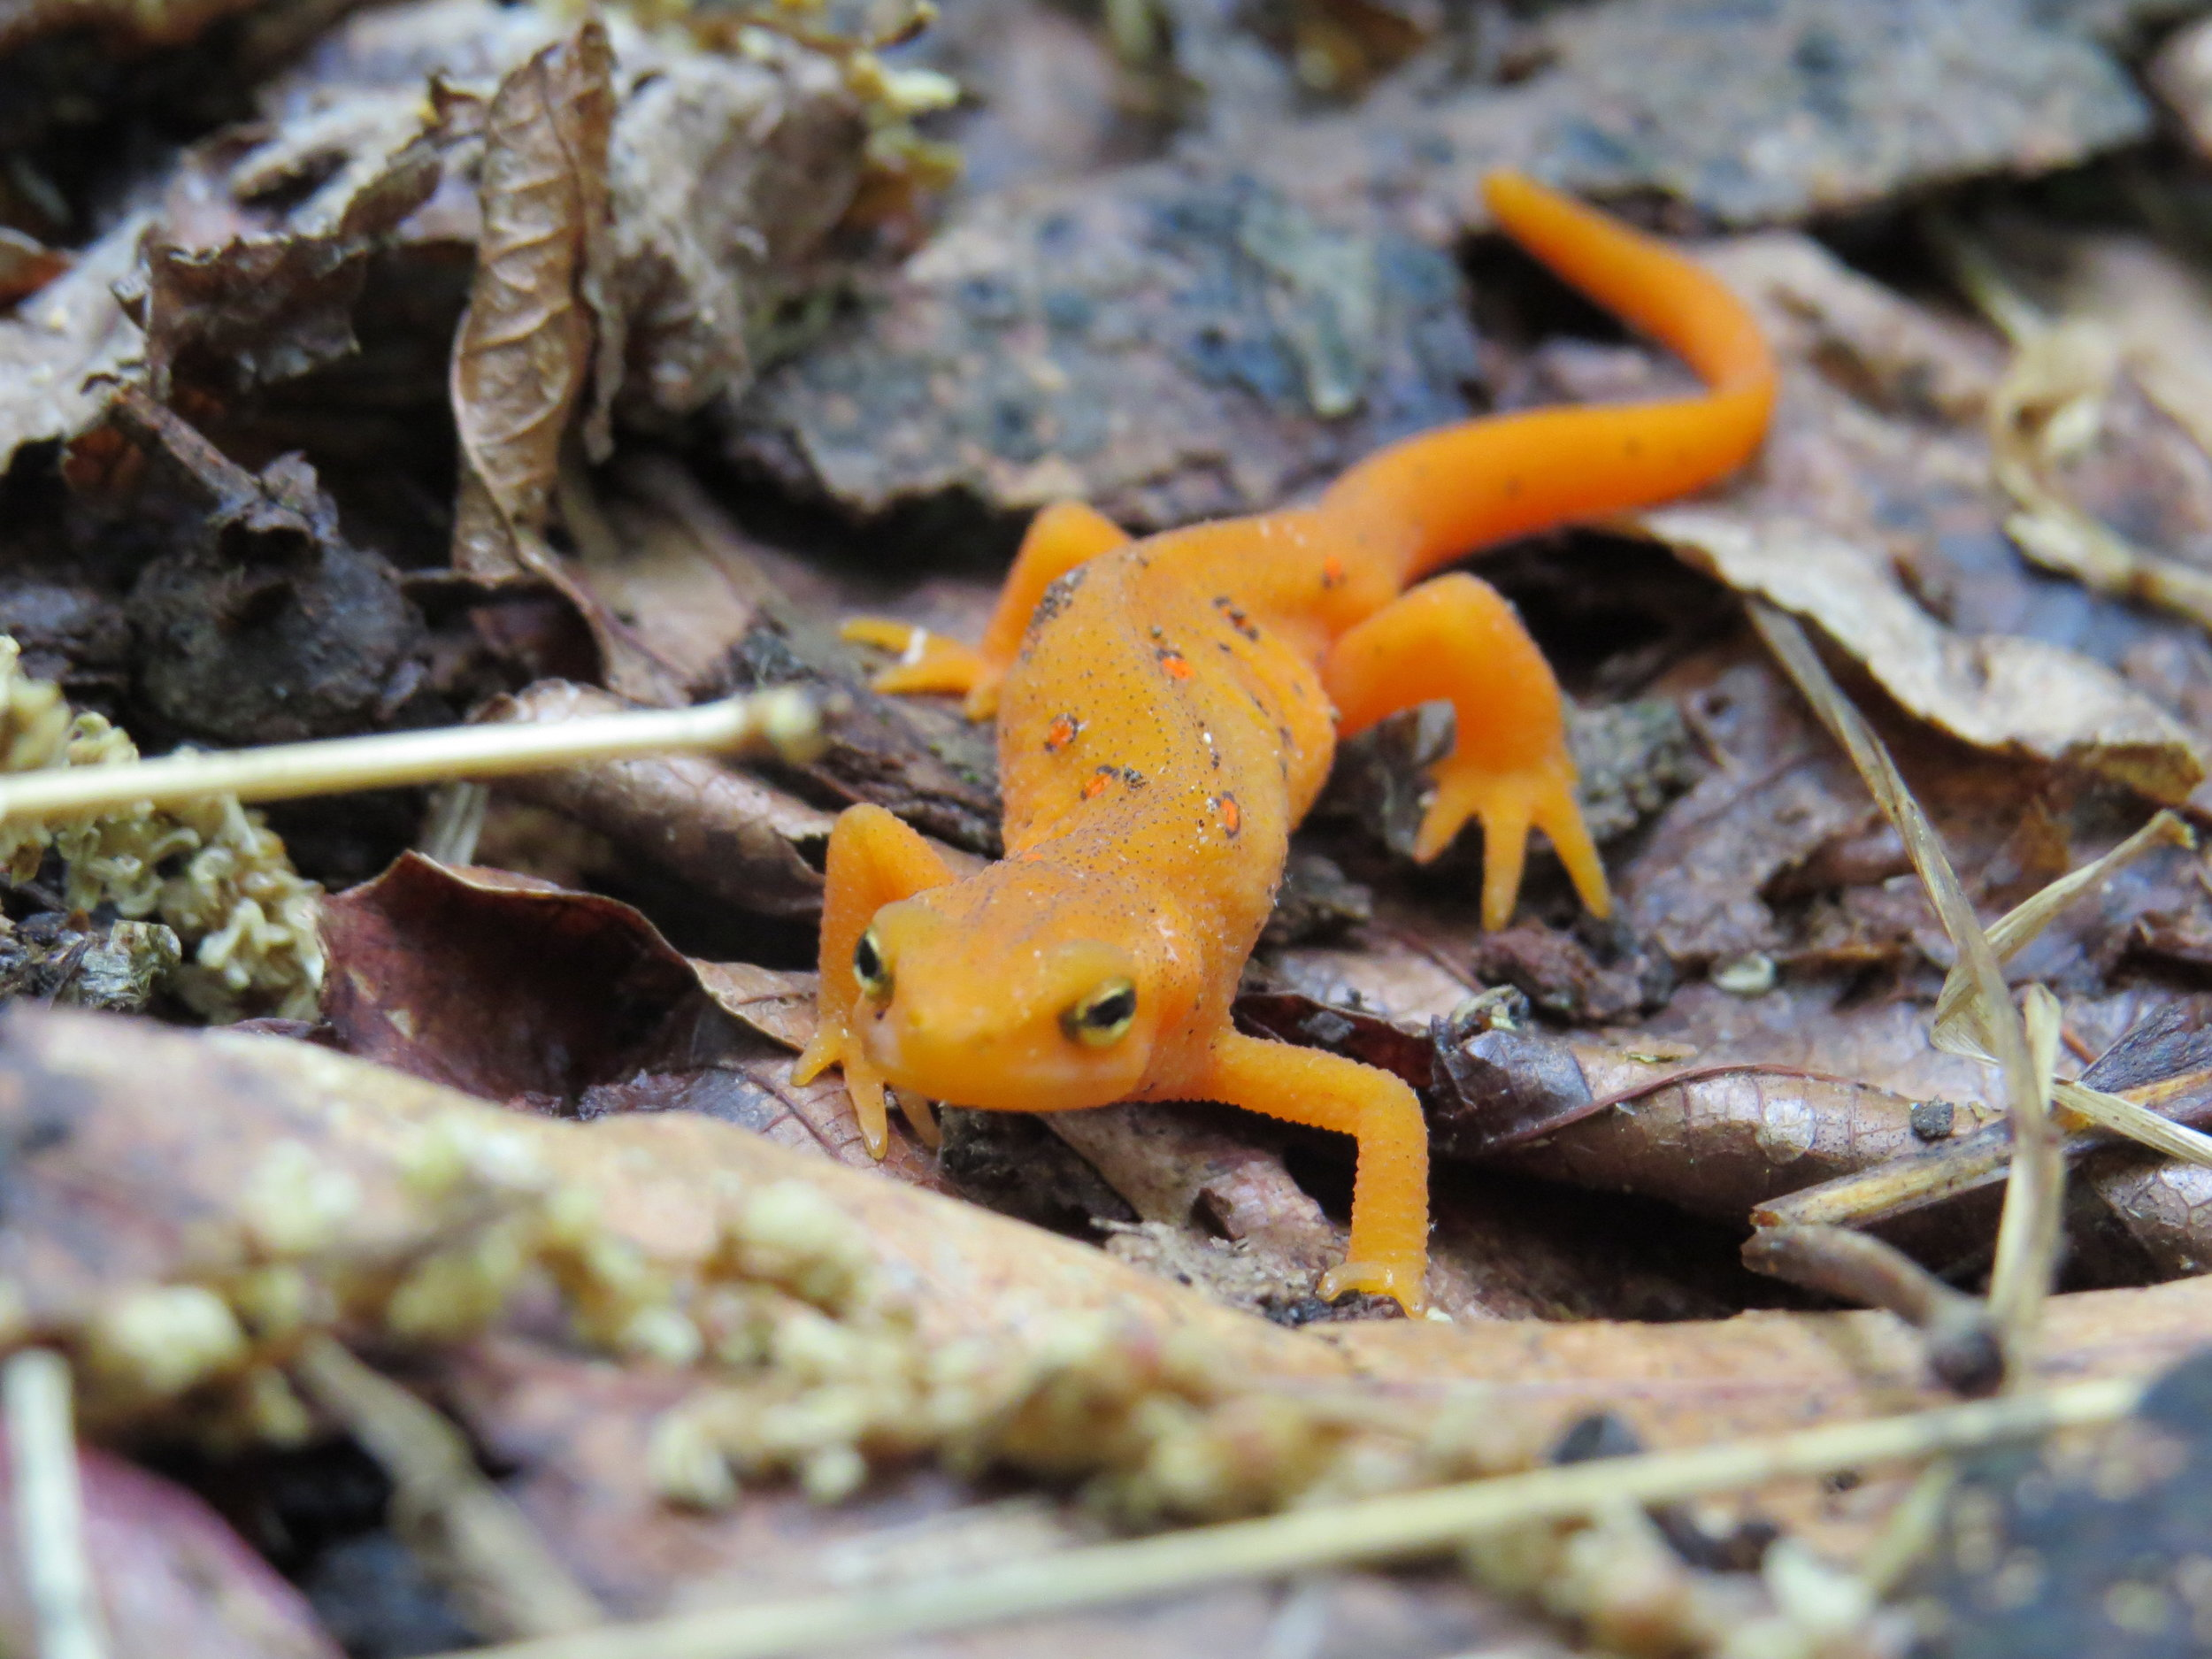 Red-spotted Newt photo taken by Merlyn